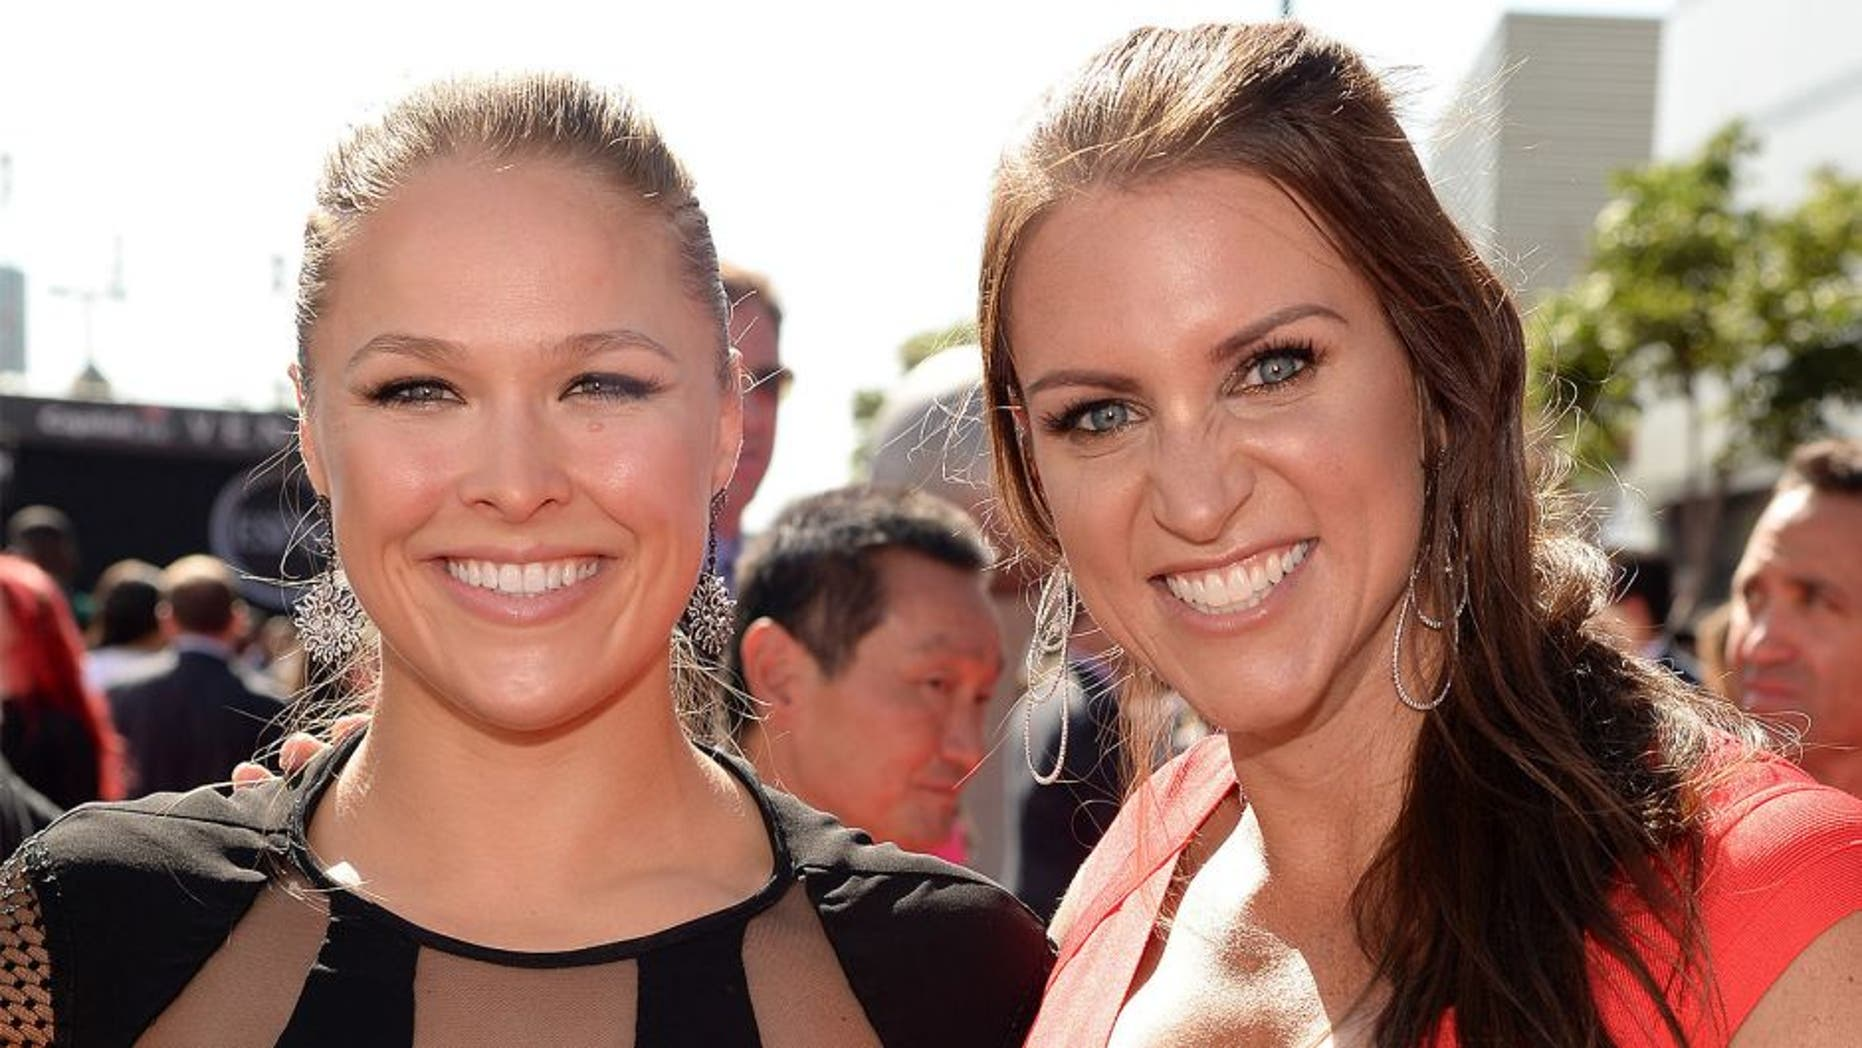 LOS ANGELES, CA - JULY 15: UFC fighter Ronda Rousey (L) and Chief Brand Officer of WWE Stephanie McMahon attend The 2015 ESPYS at Microsoft Theater on July 15, 2015 in Los Angeles, California. (Photo by Kevin Mazur/WireImage)